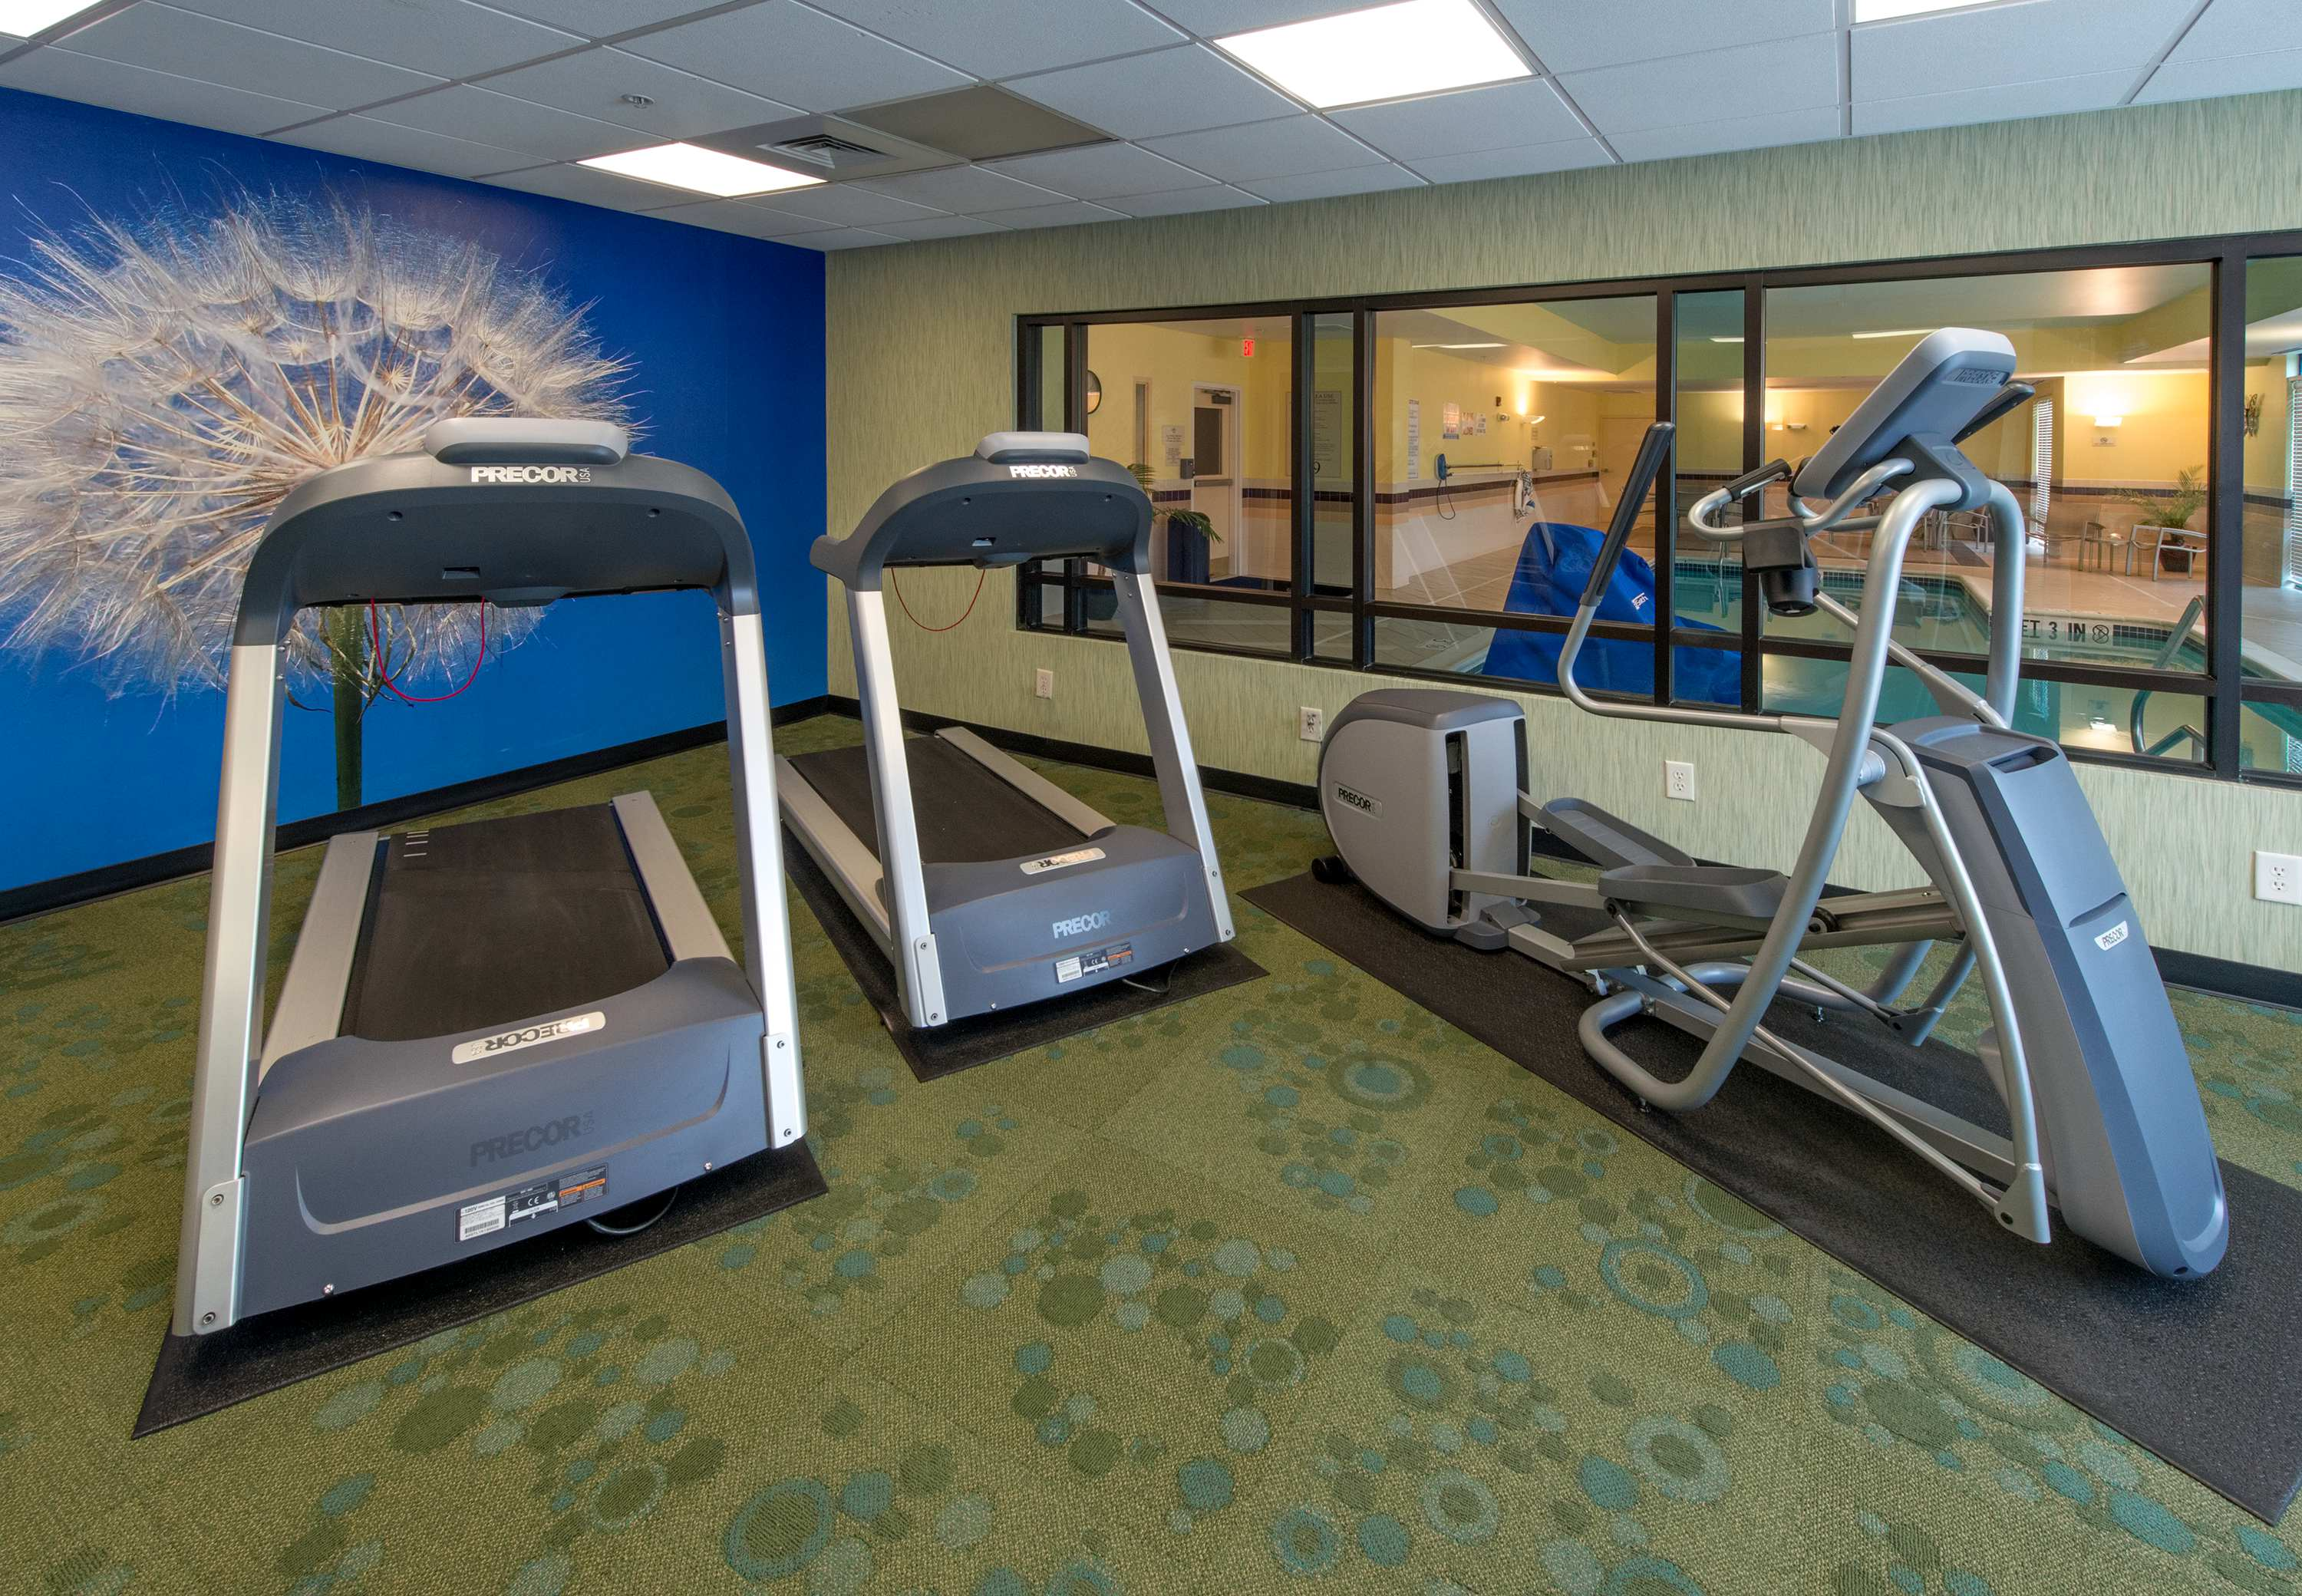 SpringHill Suites by Marriott Greensboro image 12